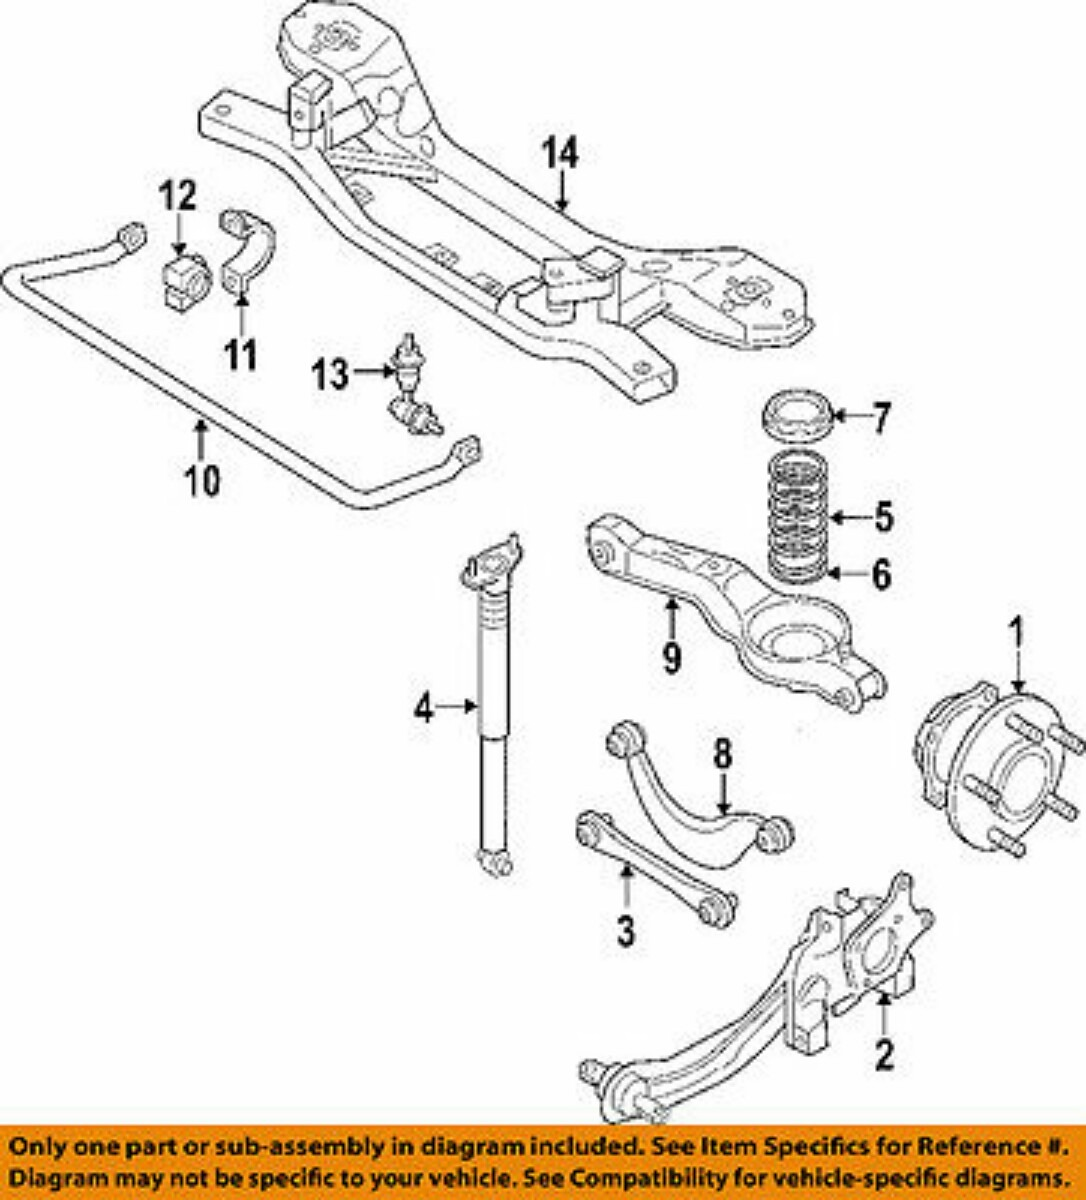 Bujes Suspencion Trasera Ford Edge 2007 A 2010